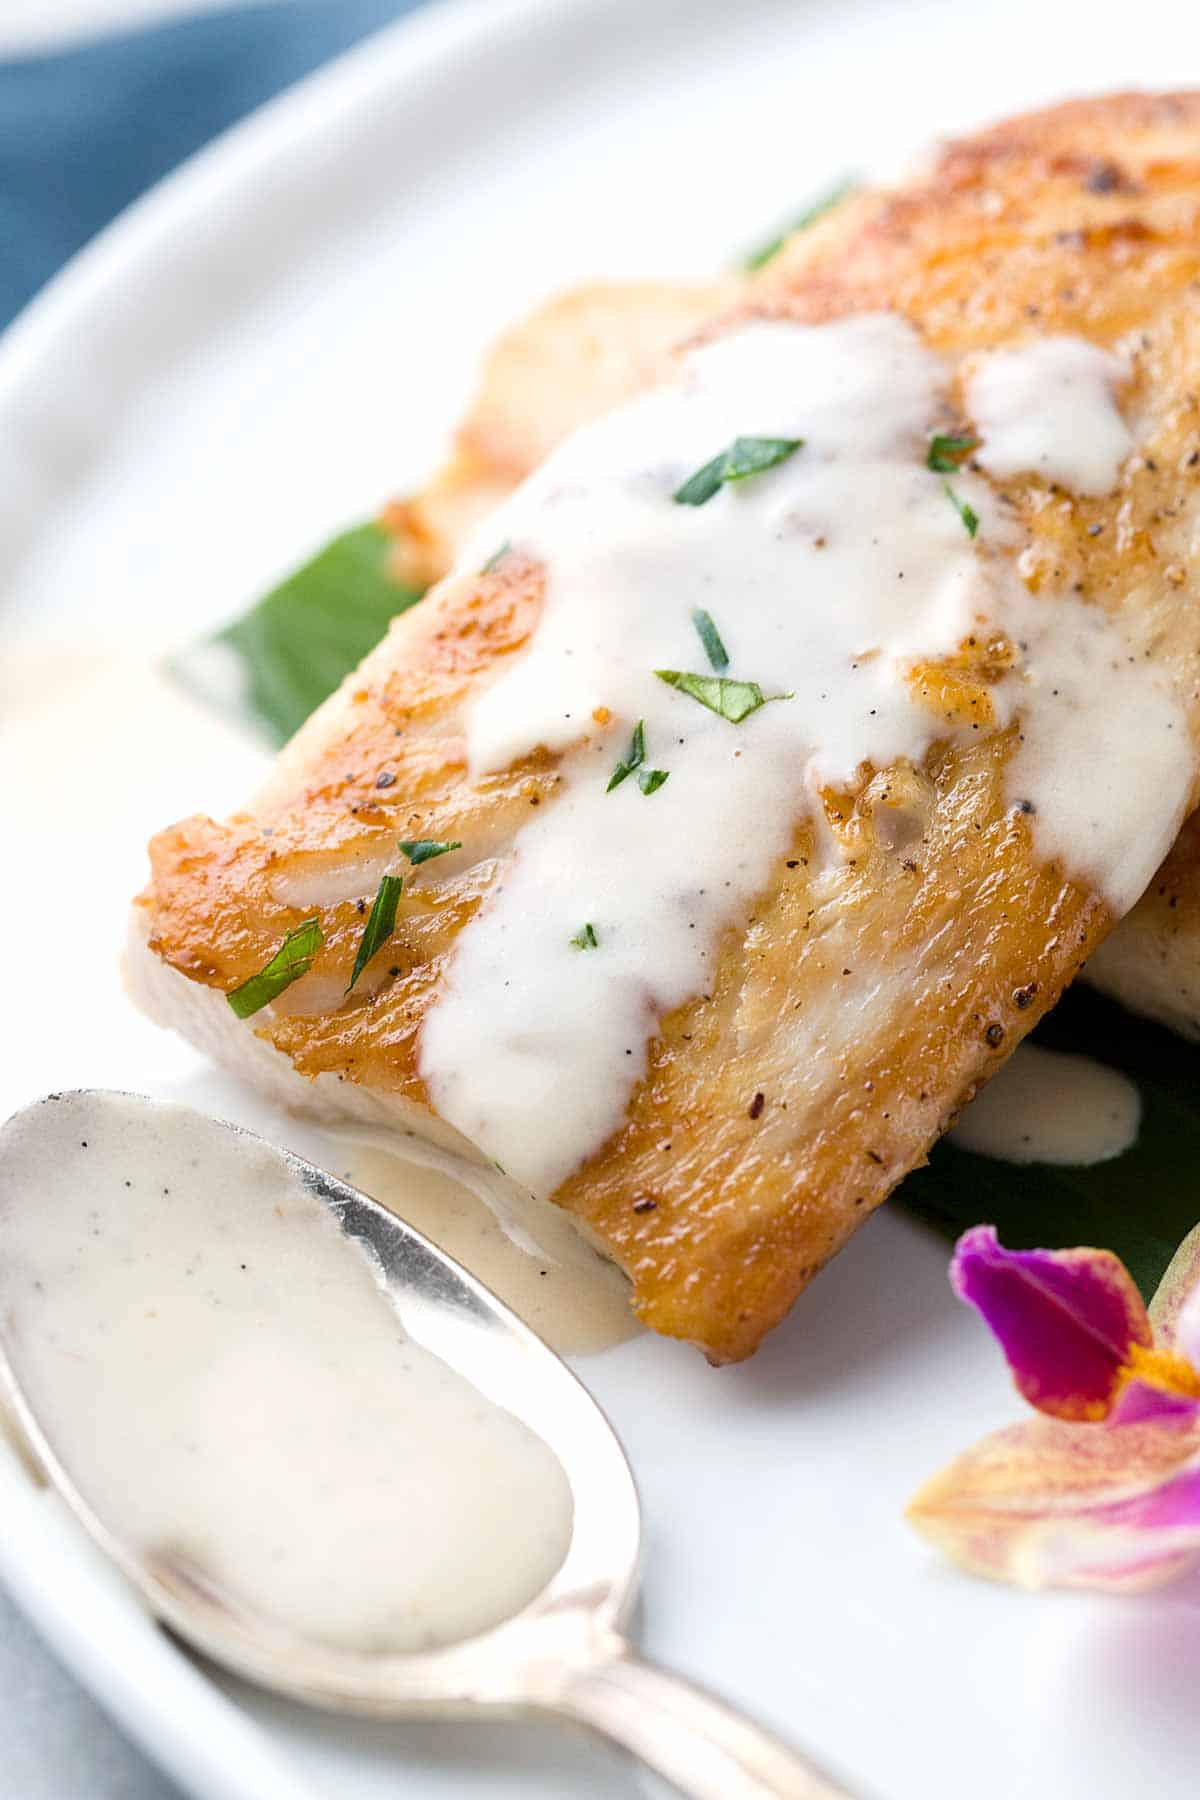 Pan seared Mahi Mahi fish fillets served with a creamy Tahitian vanilla bean sauce, a classic French Polynesian recipe made with rum and coconut.